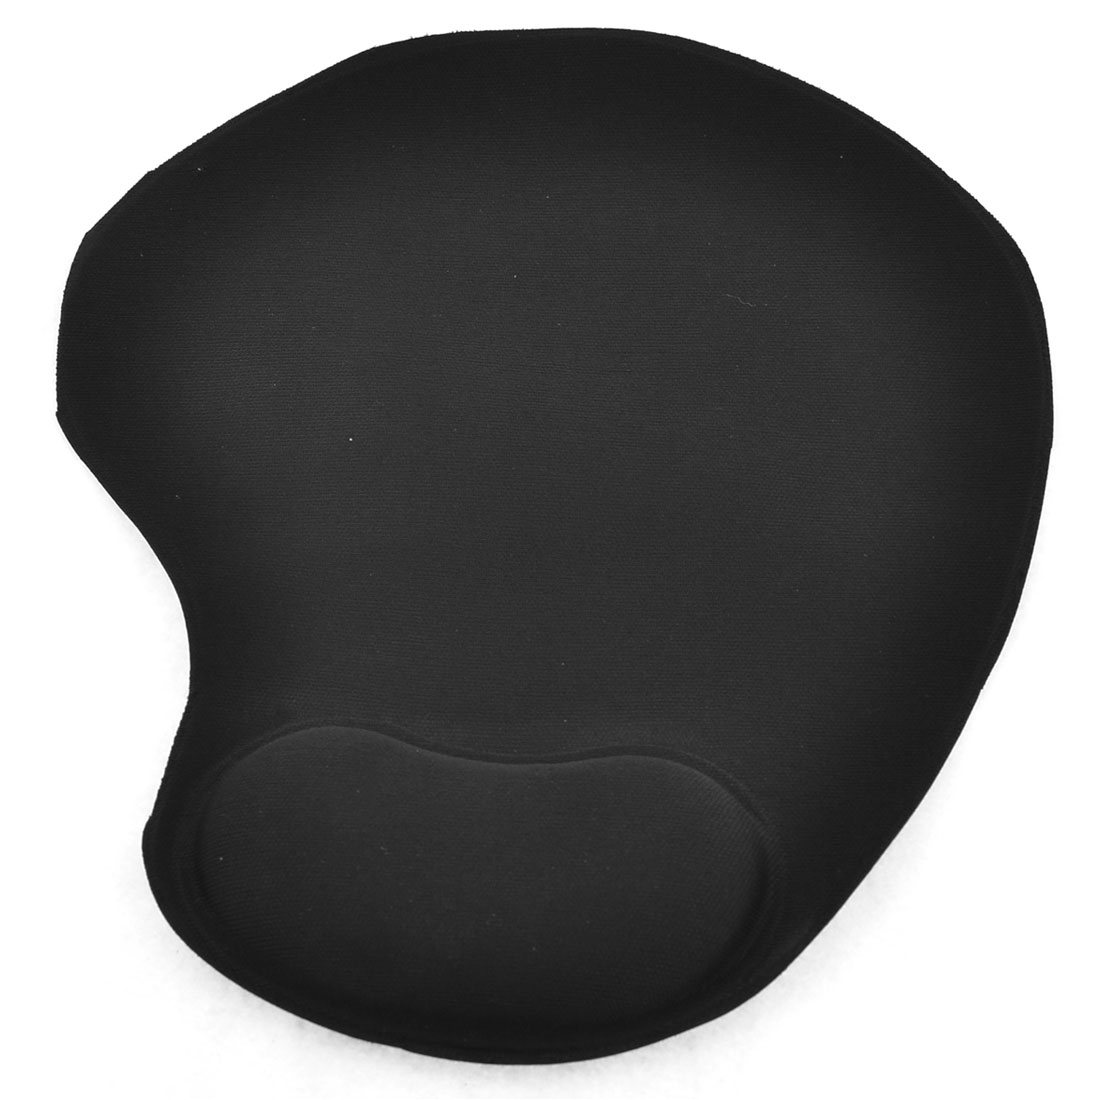 PC Computer Laptop Mouse Pad Mat Wrist Rest Support Black